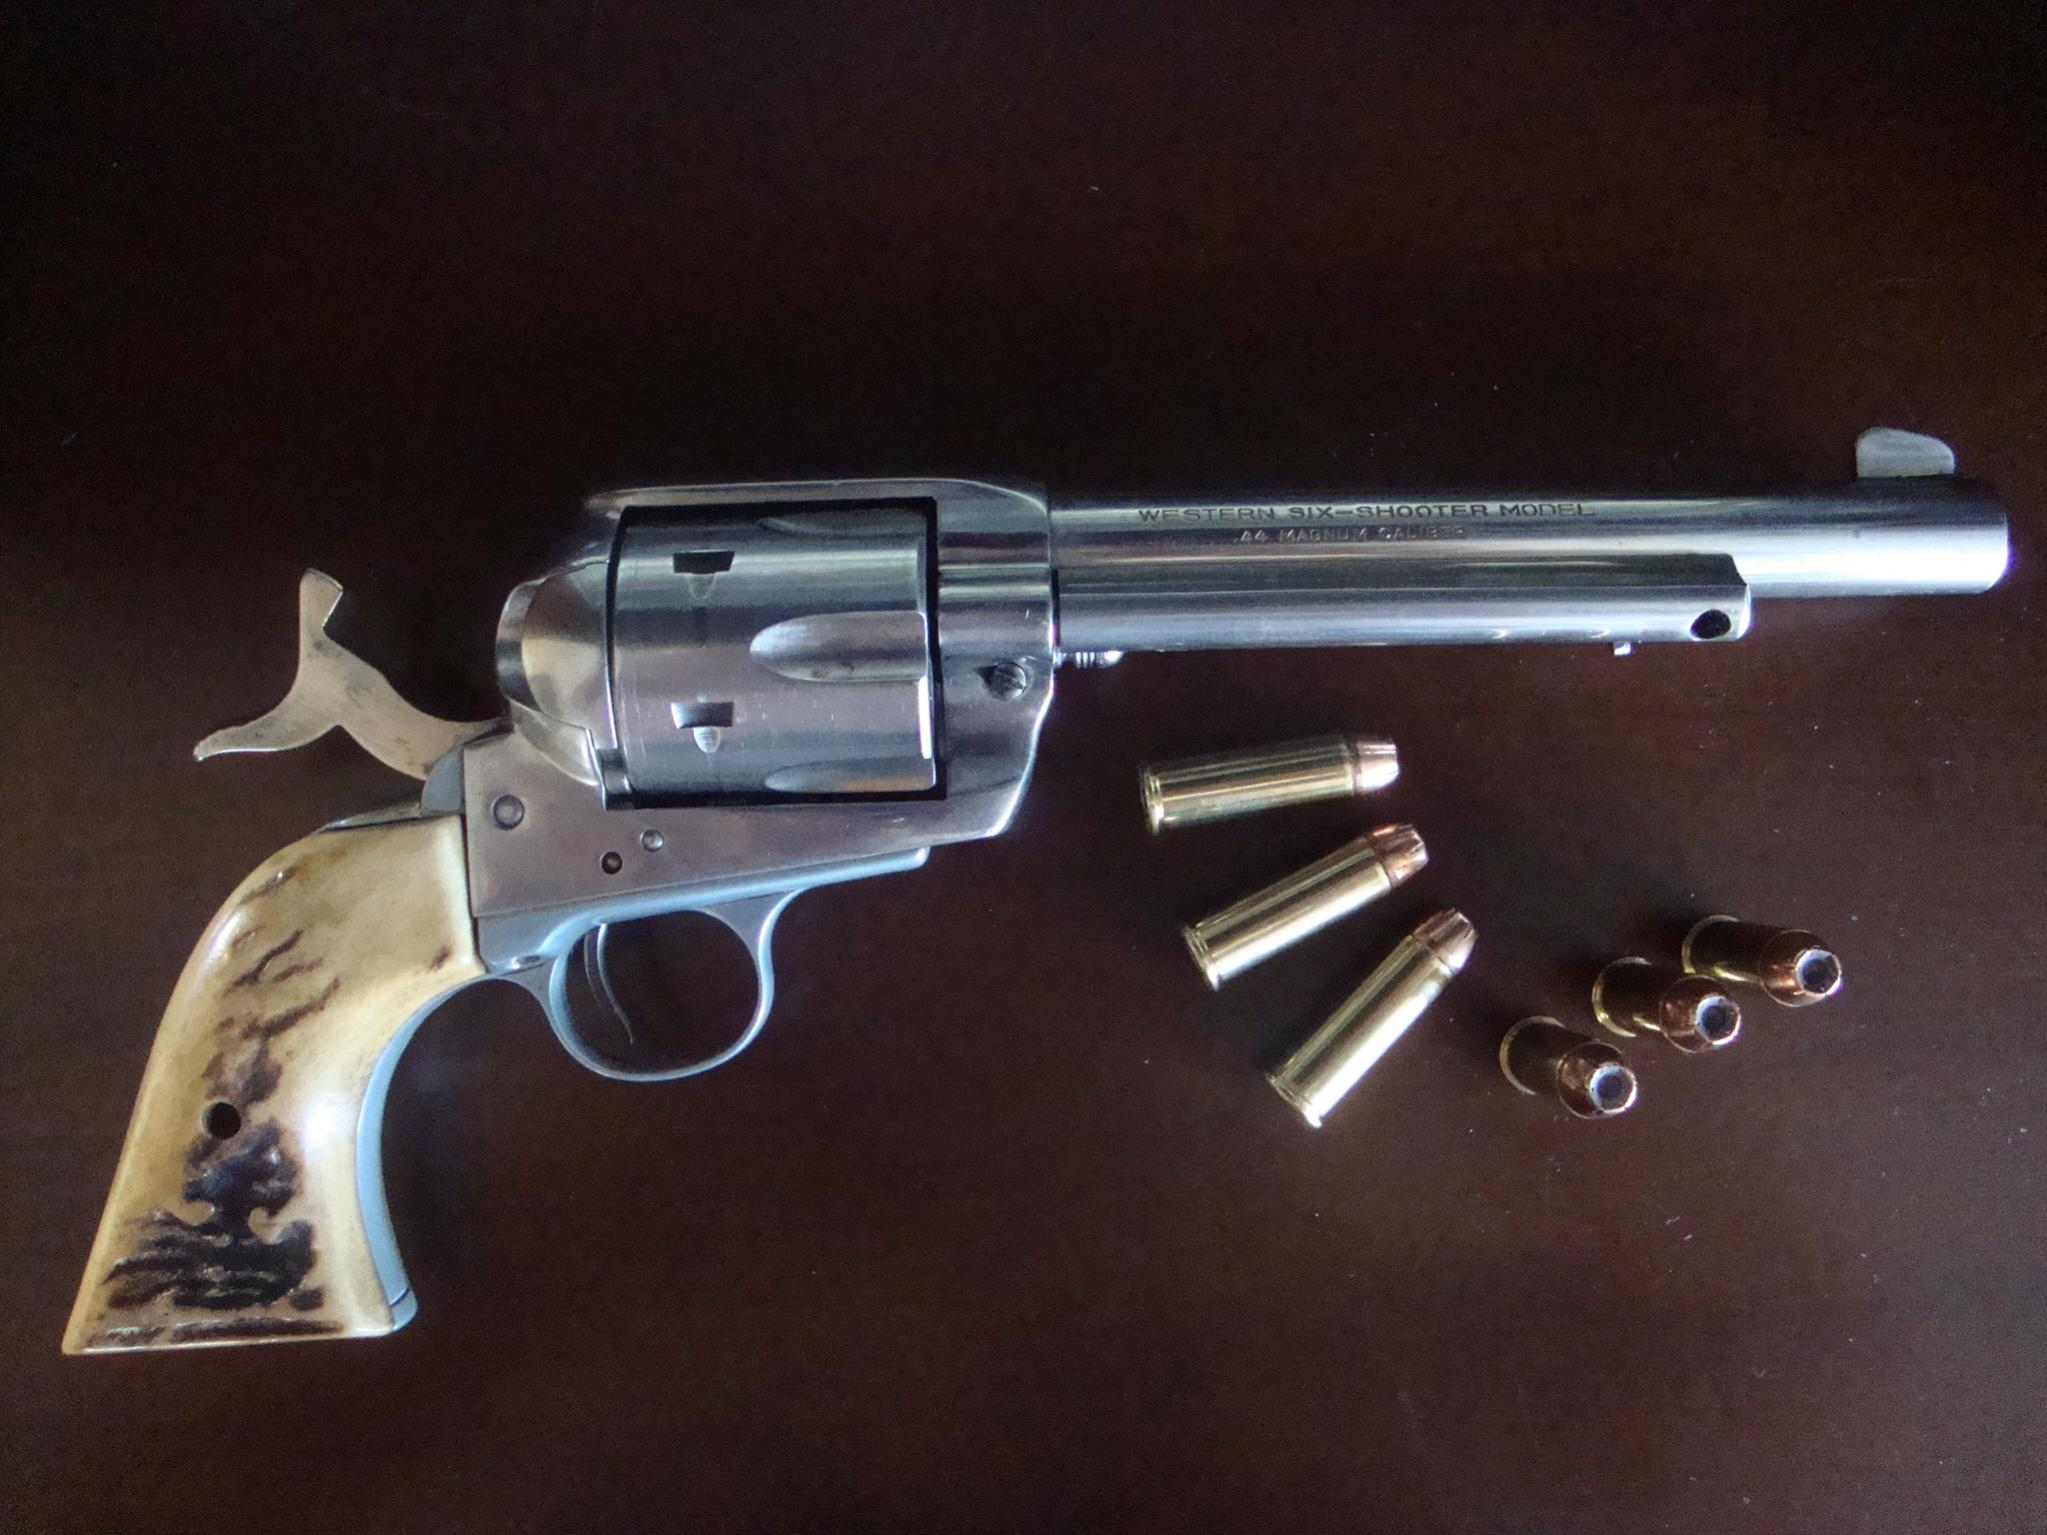 44 Magnum: Your experience?-dsc02111.jpg